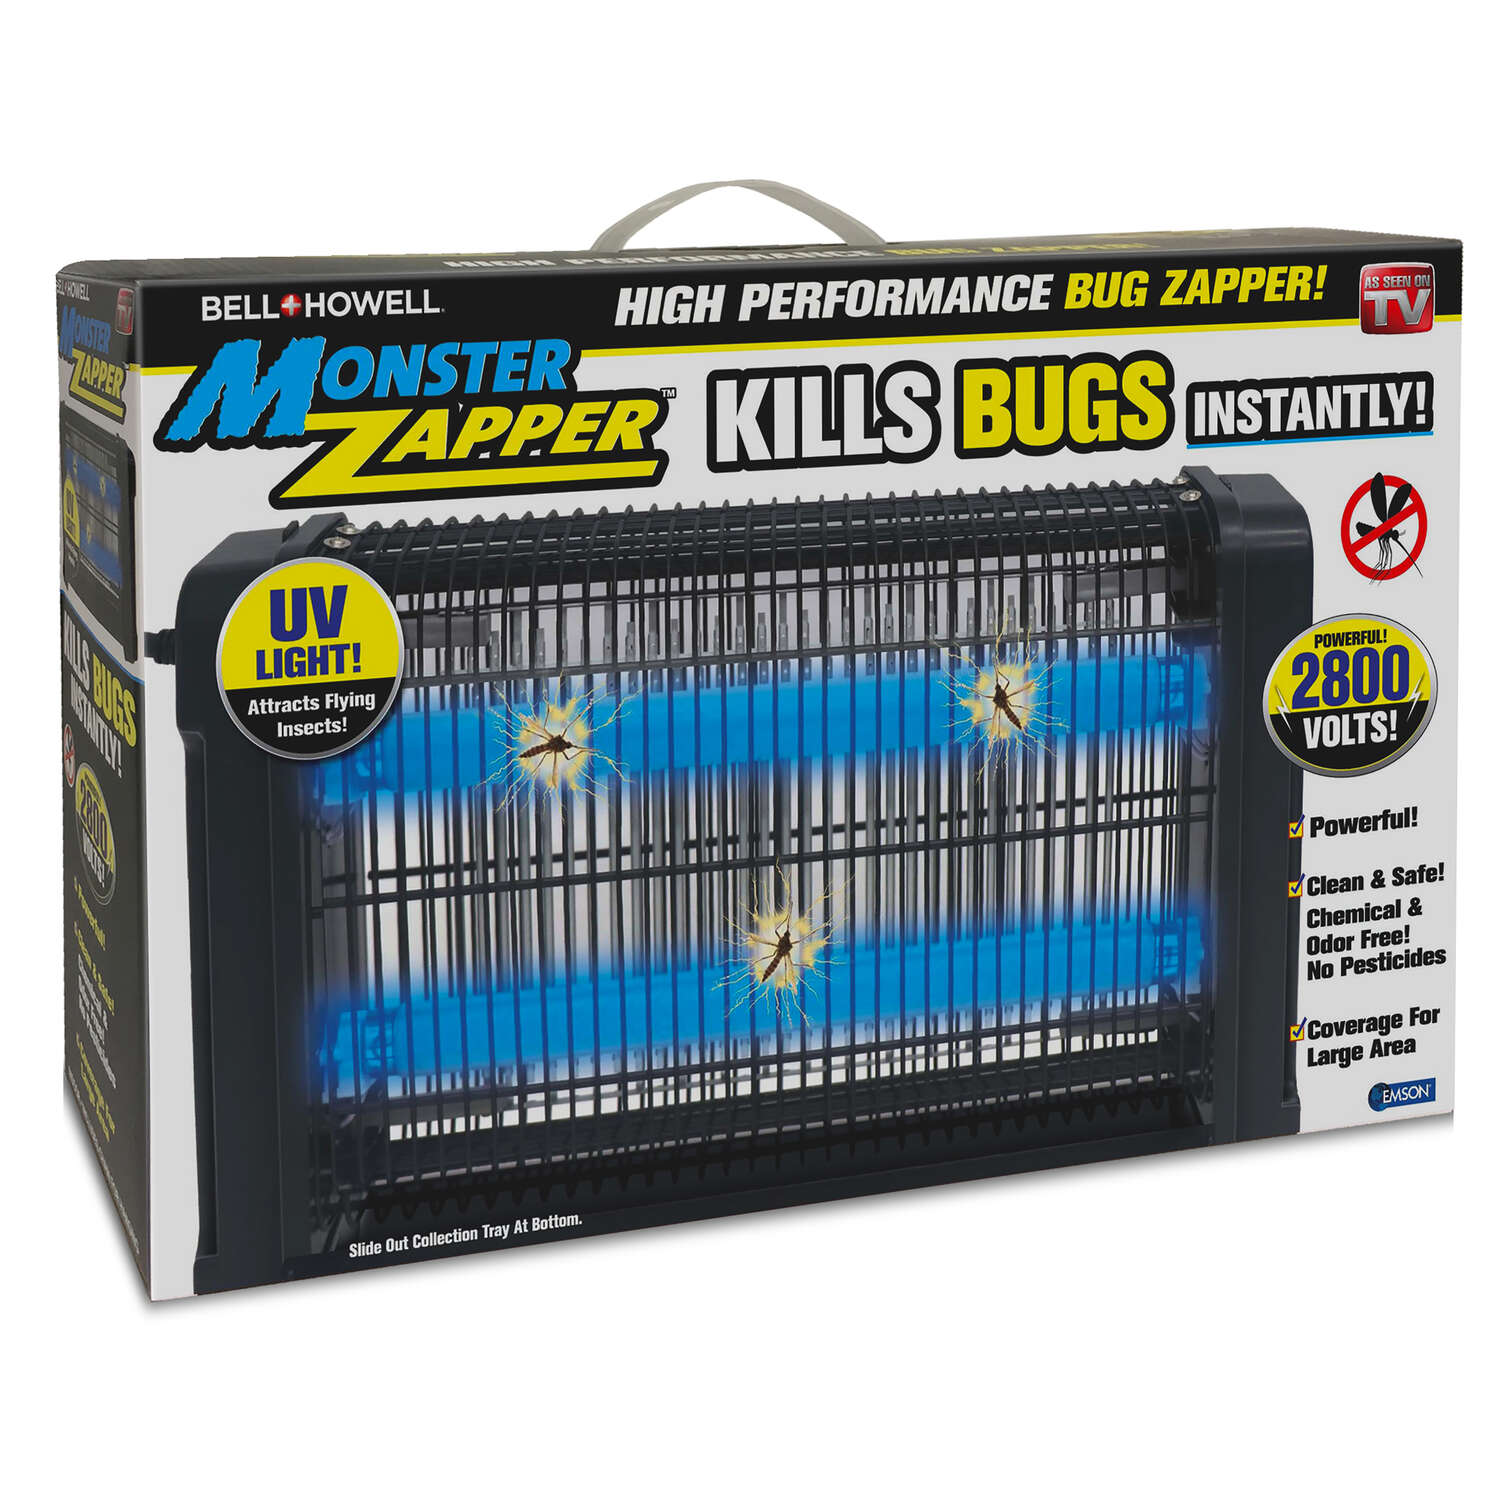 Bell and Howell As Seen On TV Indoor Insect And Mosquito Zapper 3000 sq. ft. 20 watts